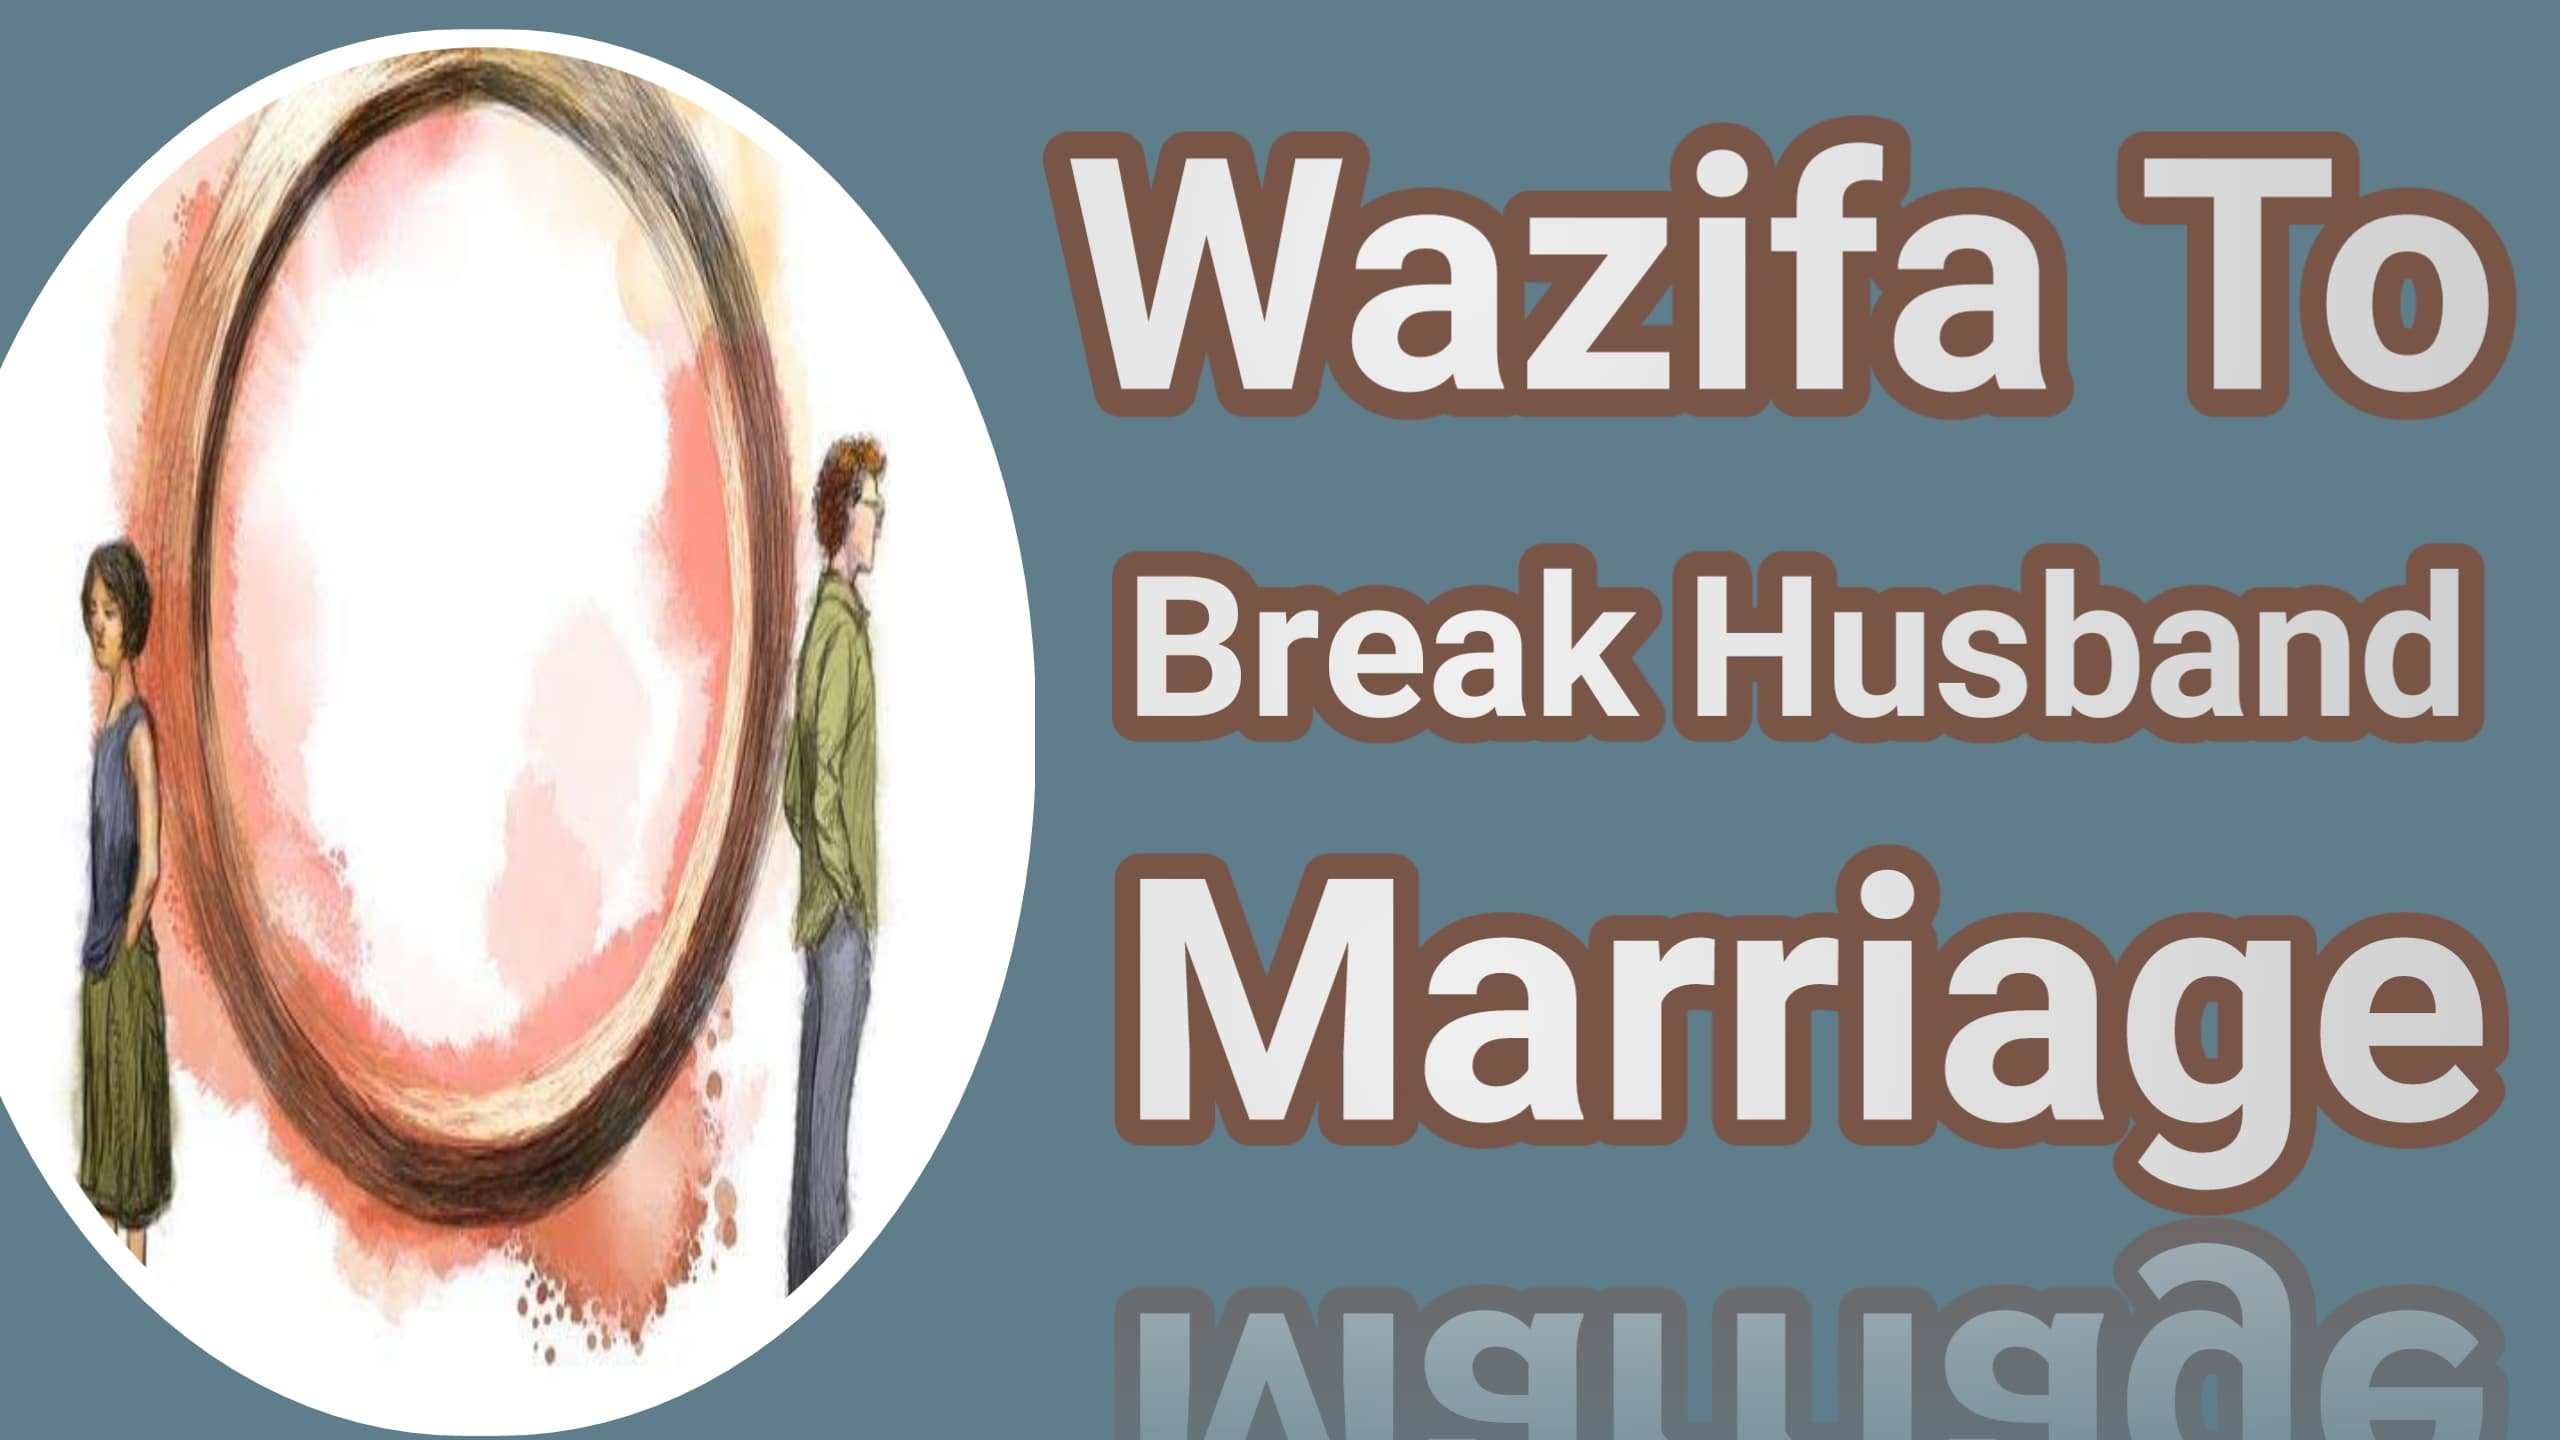 Wazifa to break husband marriage